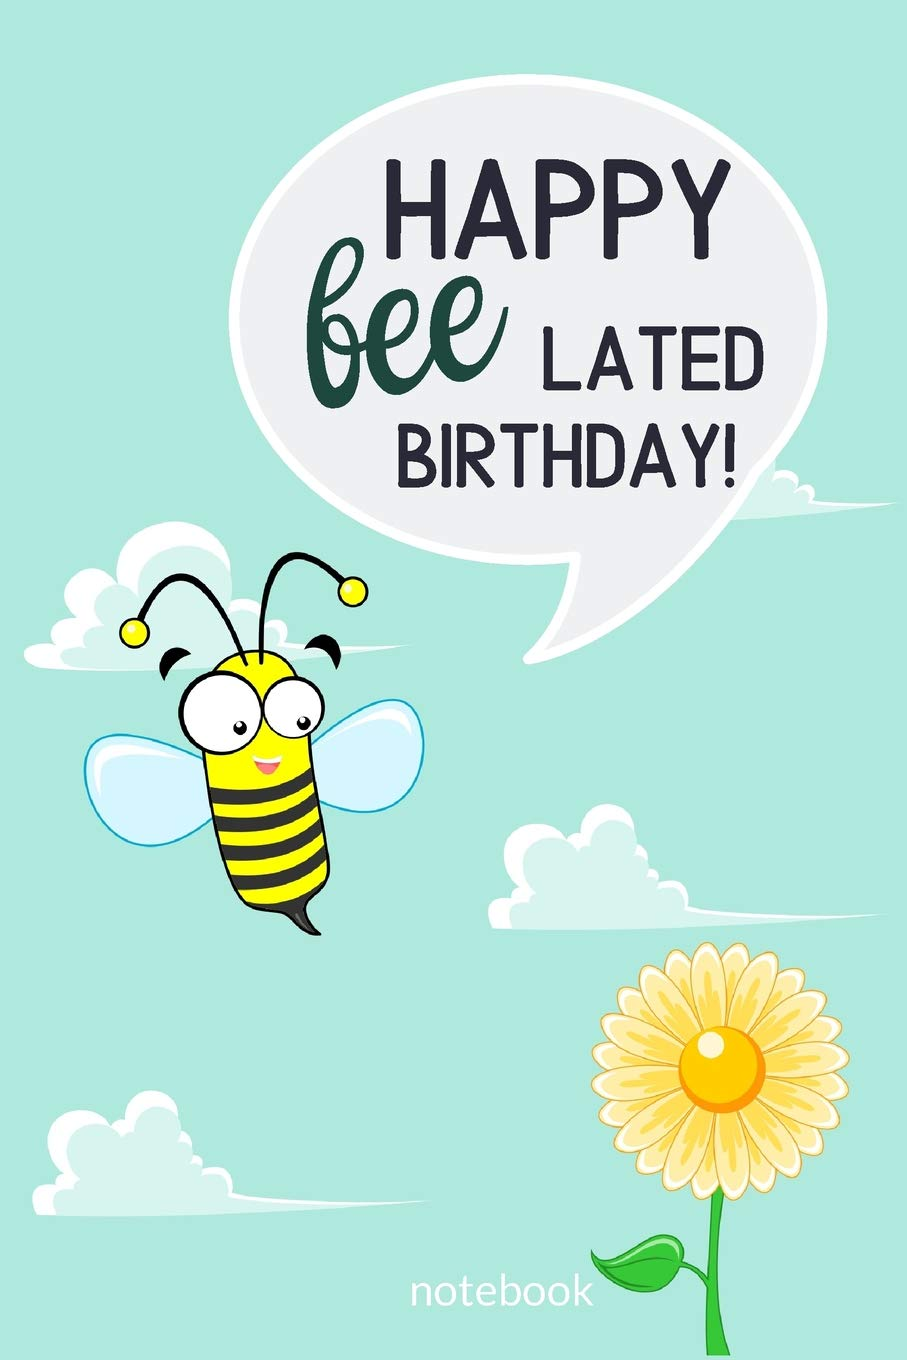 Belated Happy Birthday Notebook Happy Belated Birthday Wishes Gift Blank Lined Journal Messages Greetings Presents Cards Publishing Gary E Smith 9781070608822 Amazon Com Books